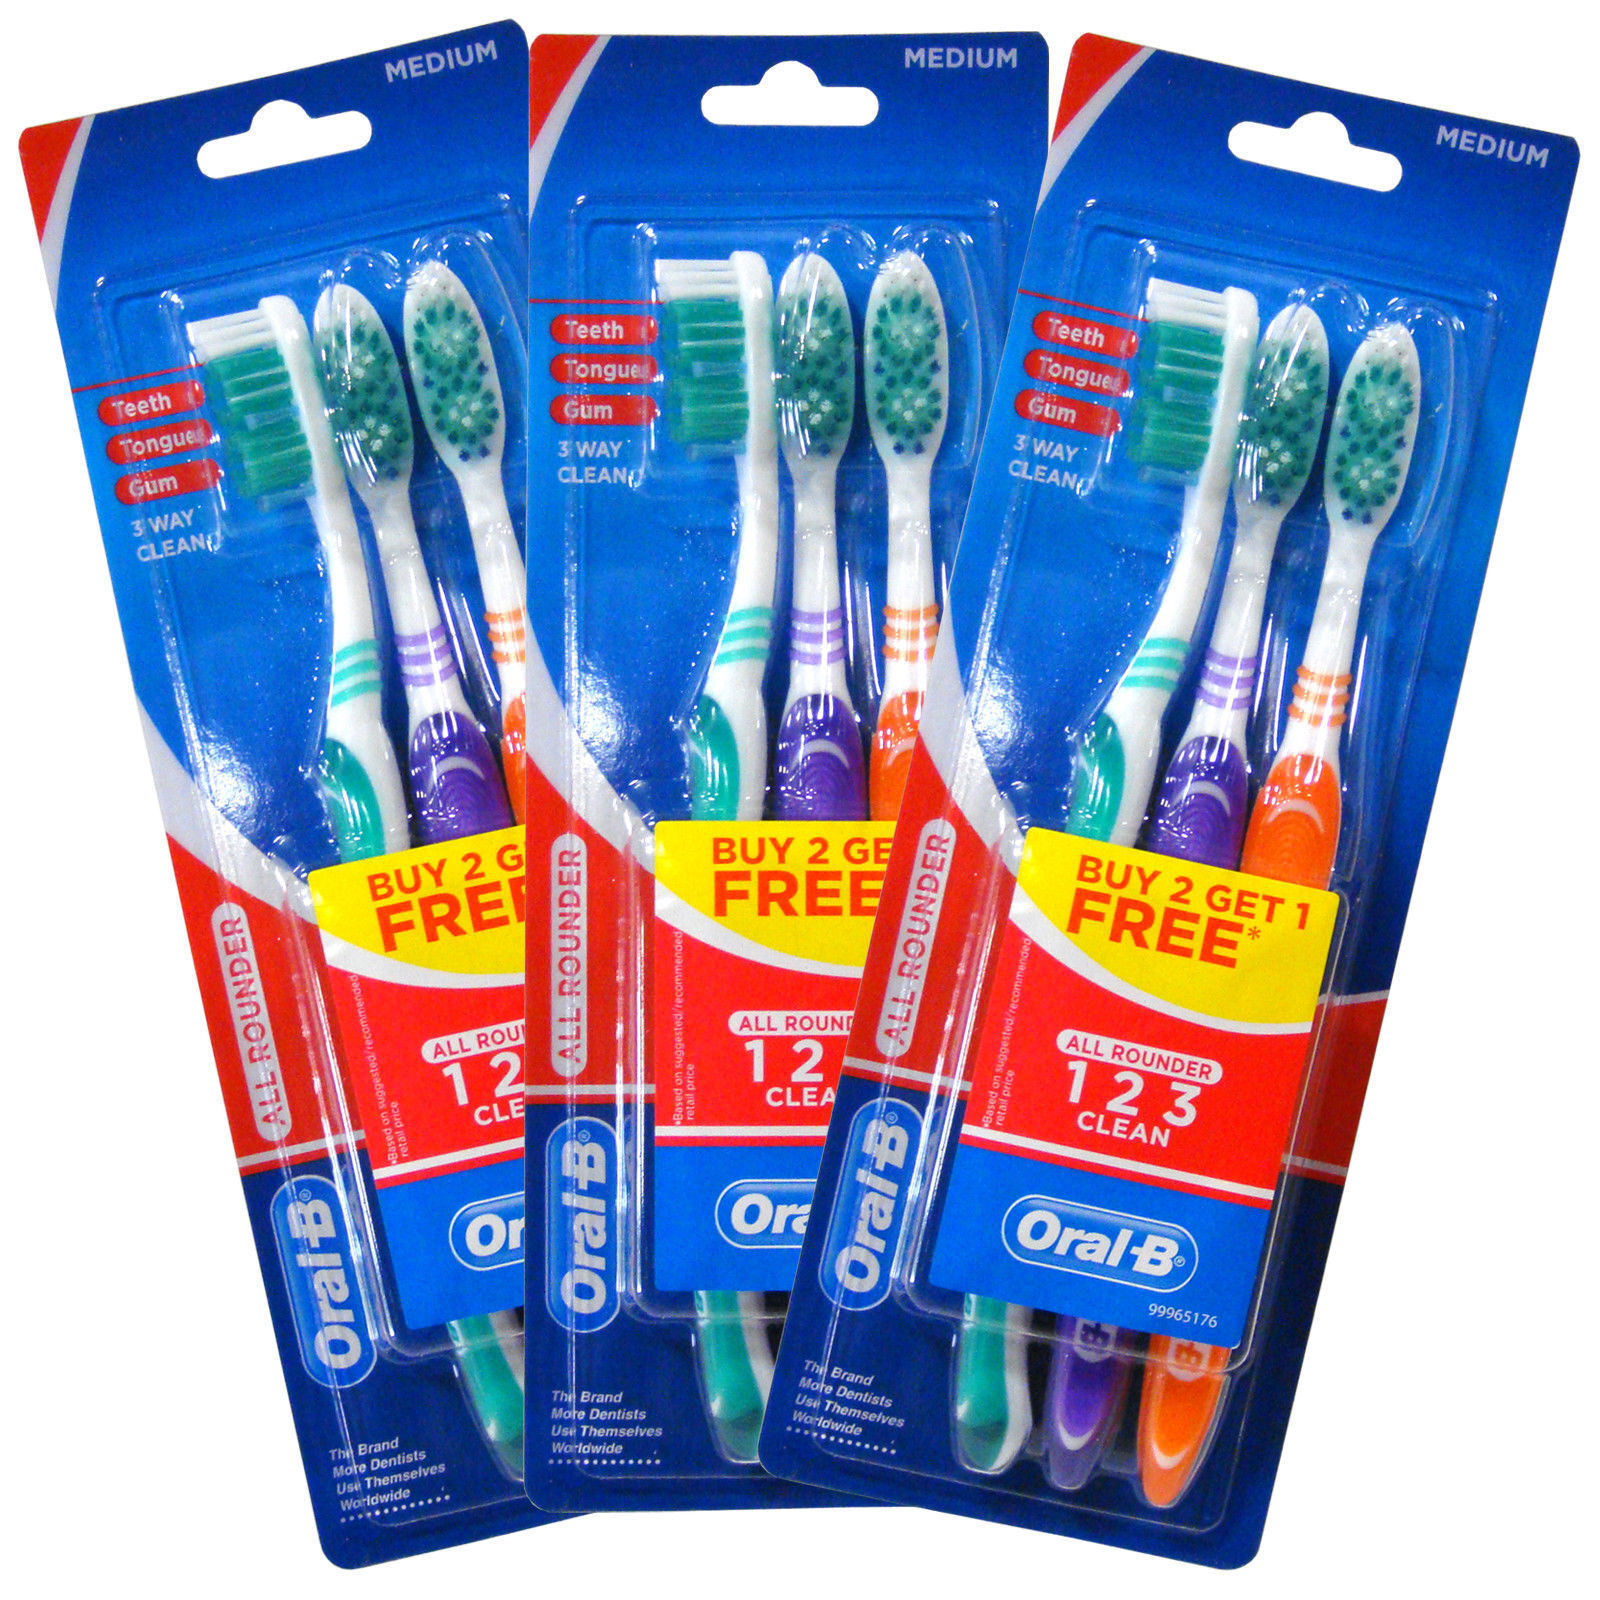 Oral-B Oralb All Rounder Medium Toothbrush 3 Pack X3